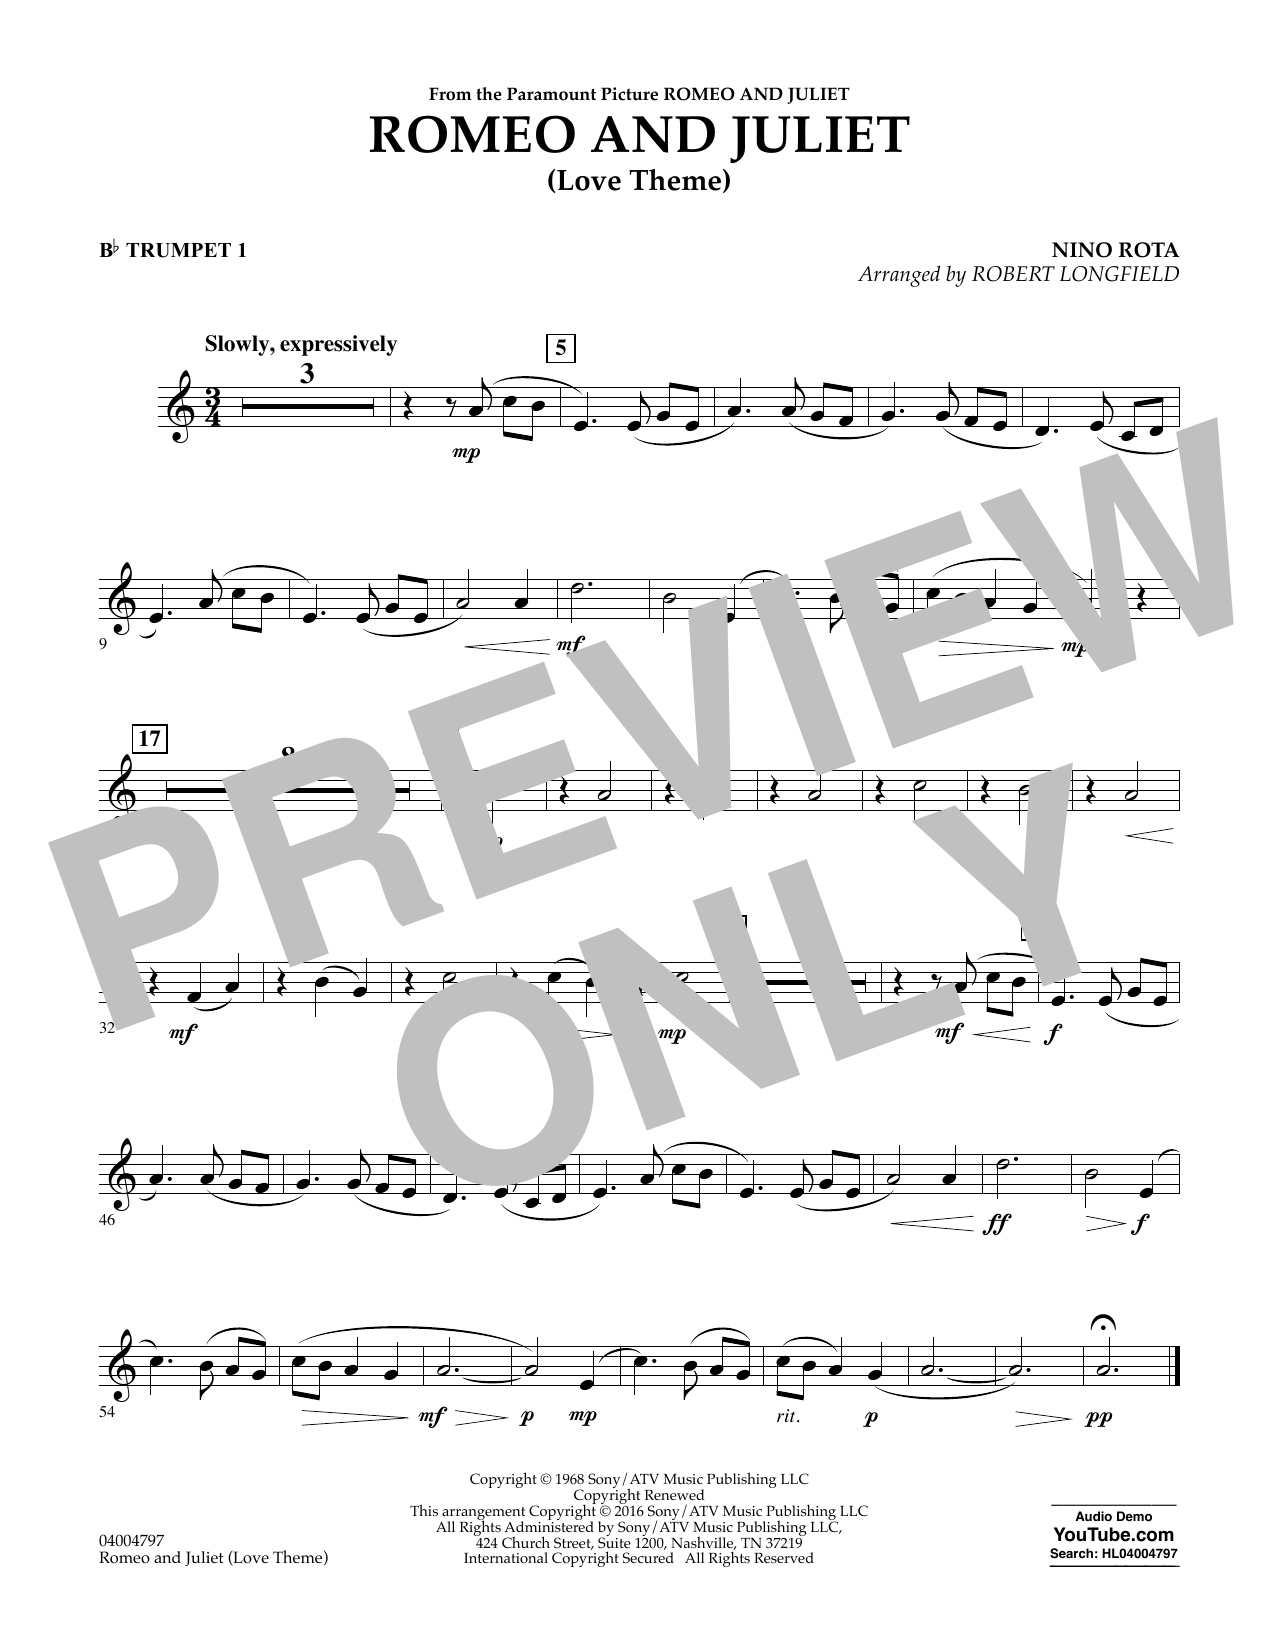 Romeo and Juliet (Love Theme) - Bb Trumpet 1 (Concert Band)